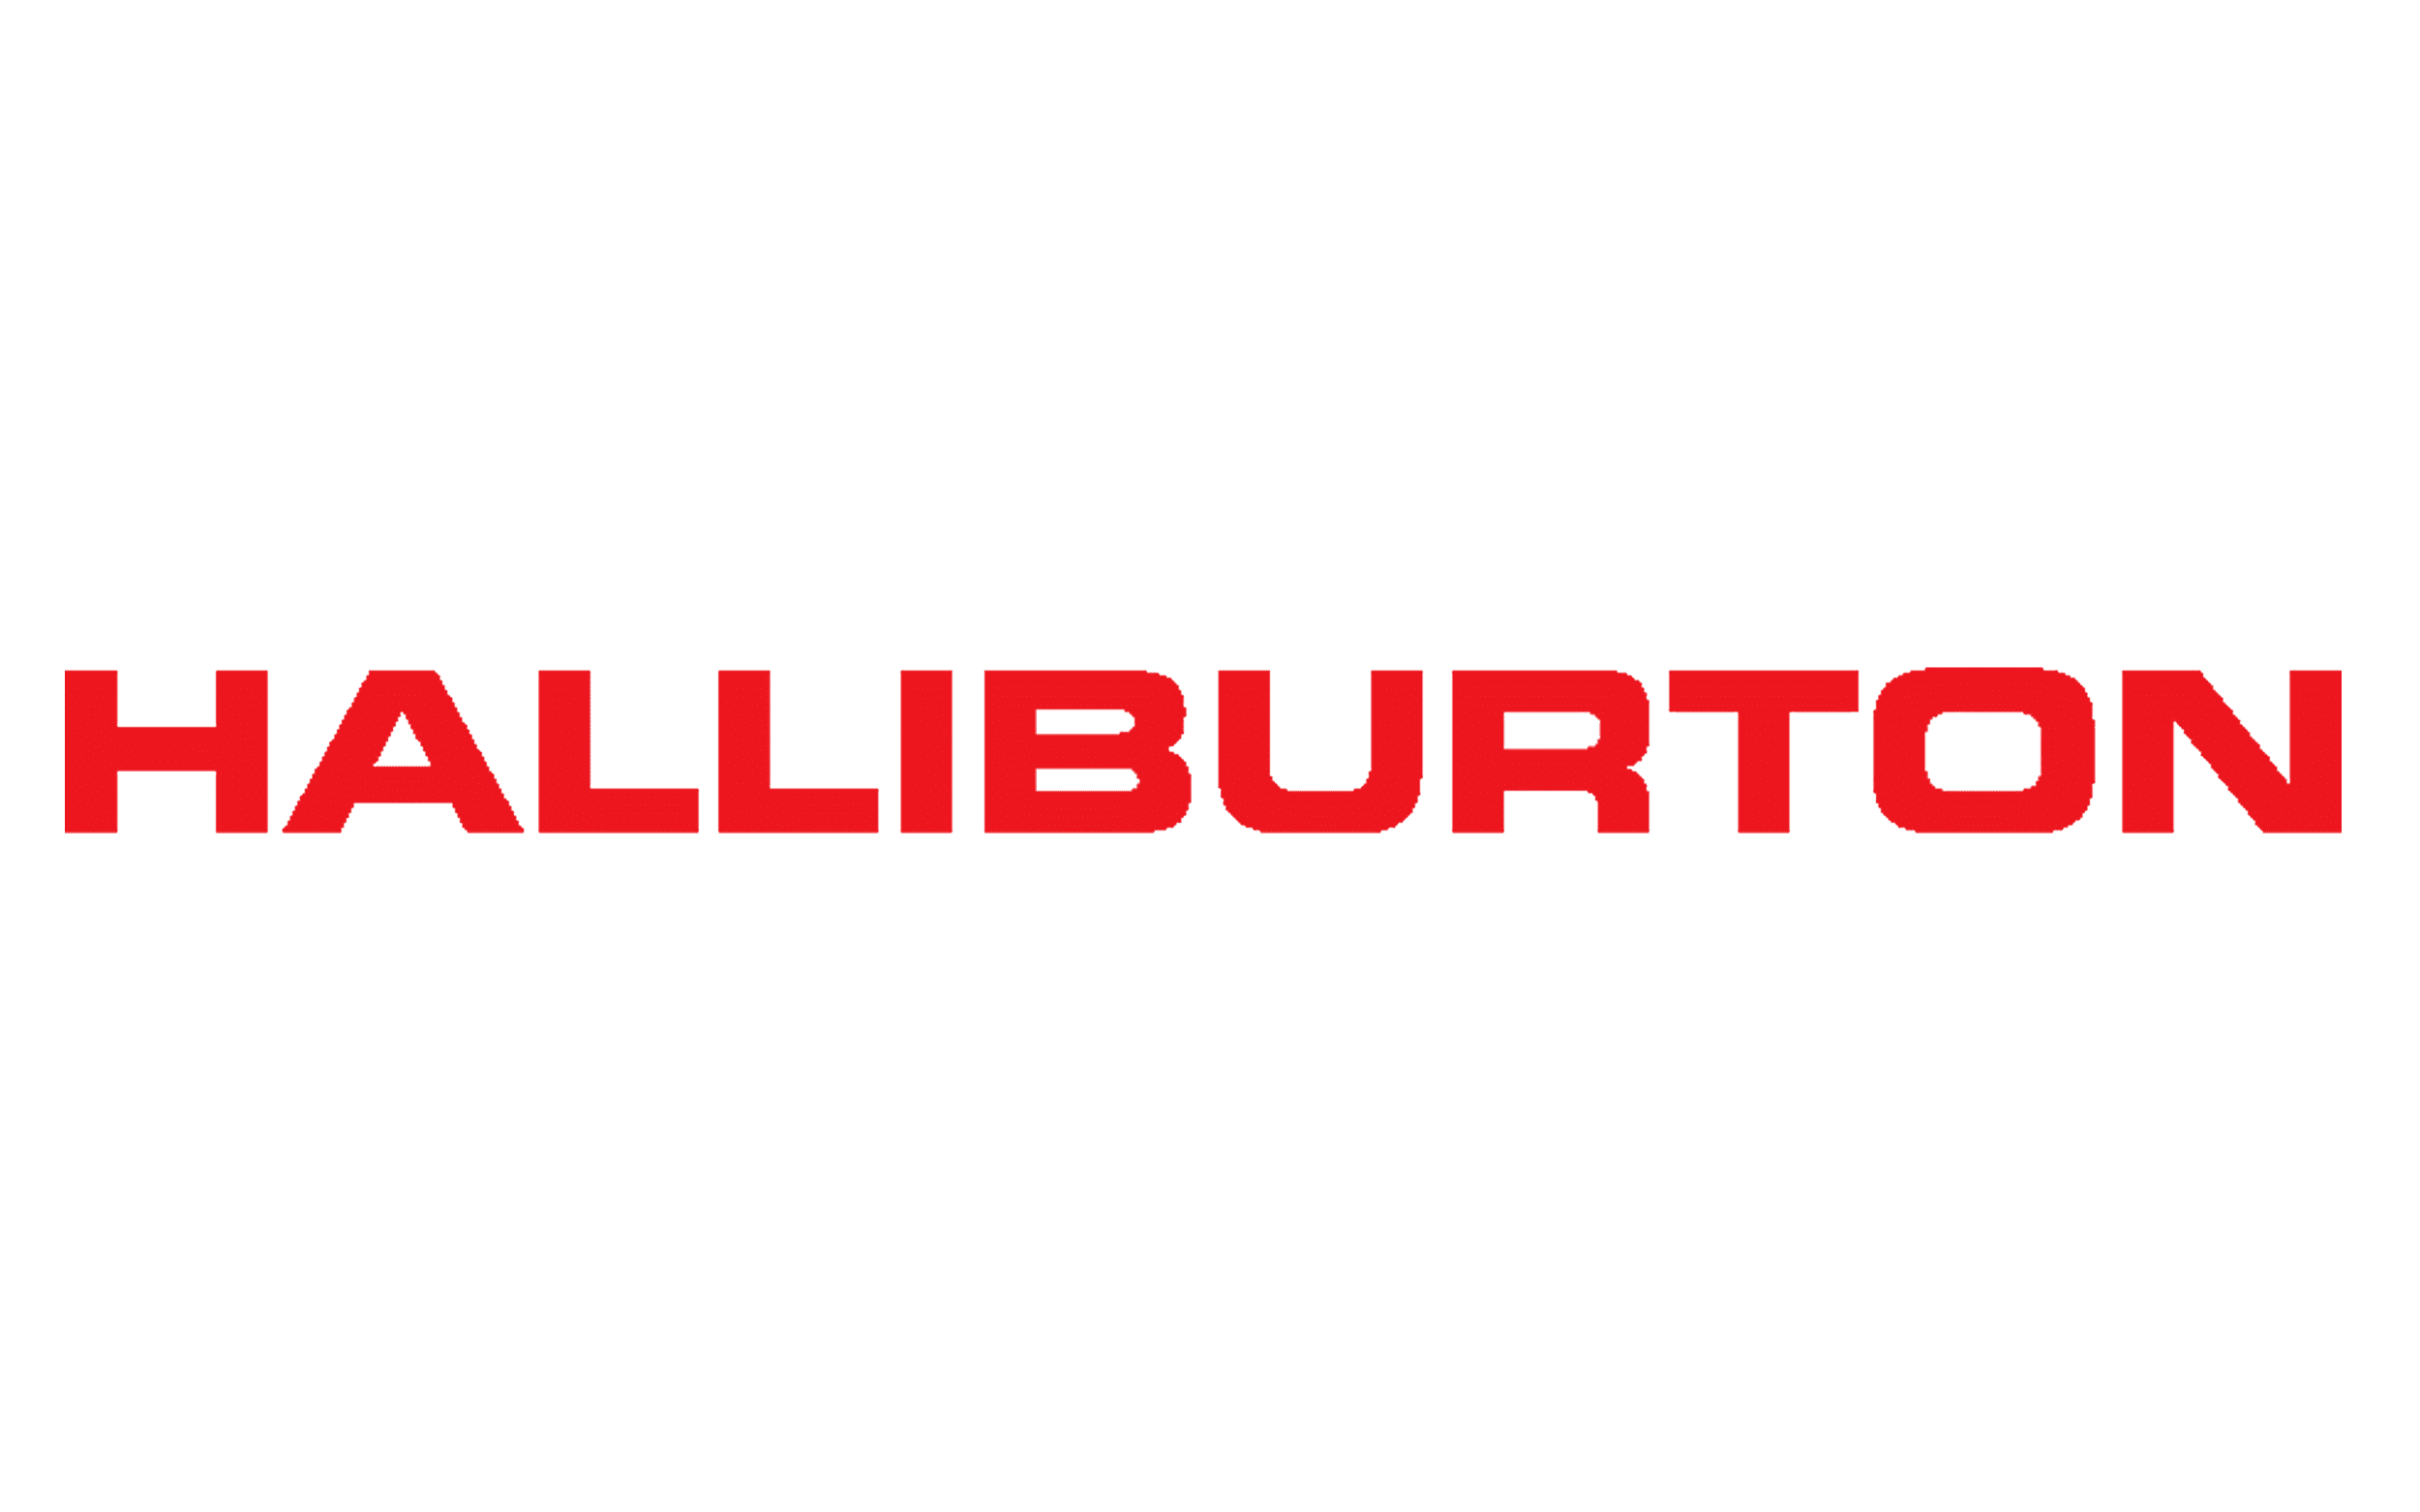 Halliburton logo and symbol, meaning, history, PNG